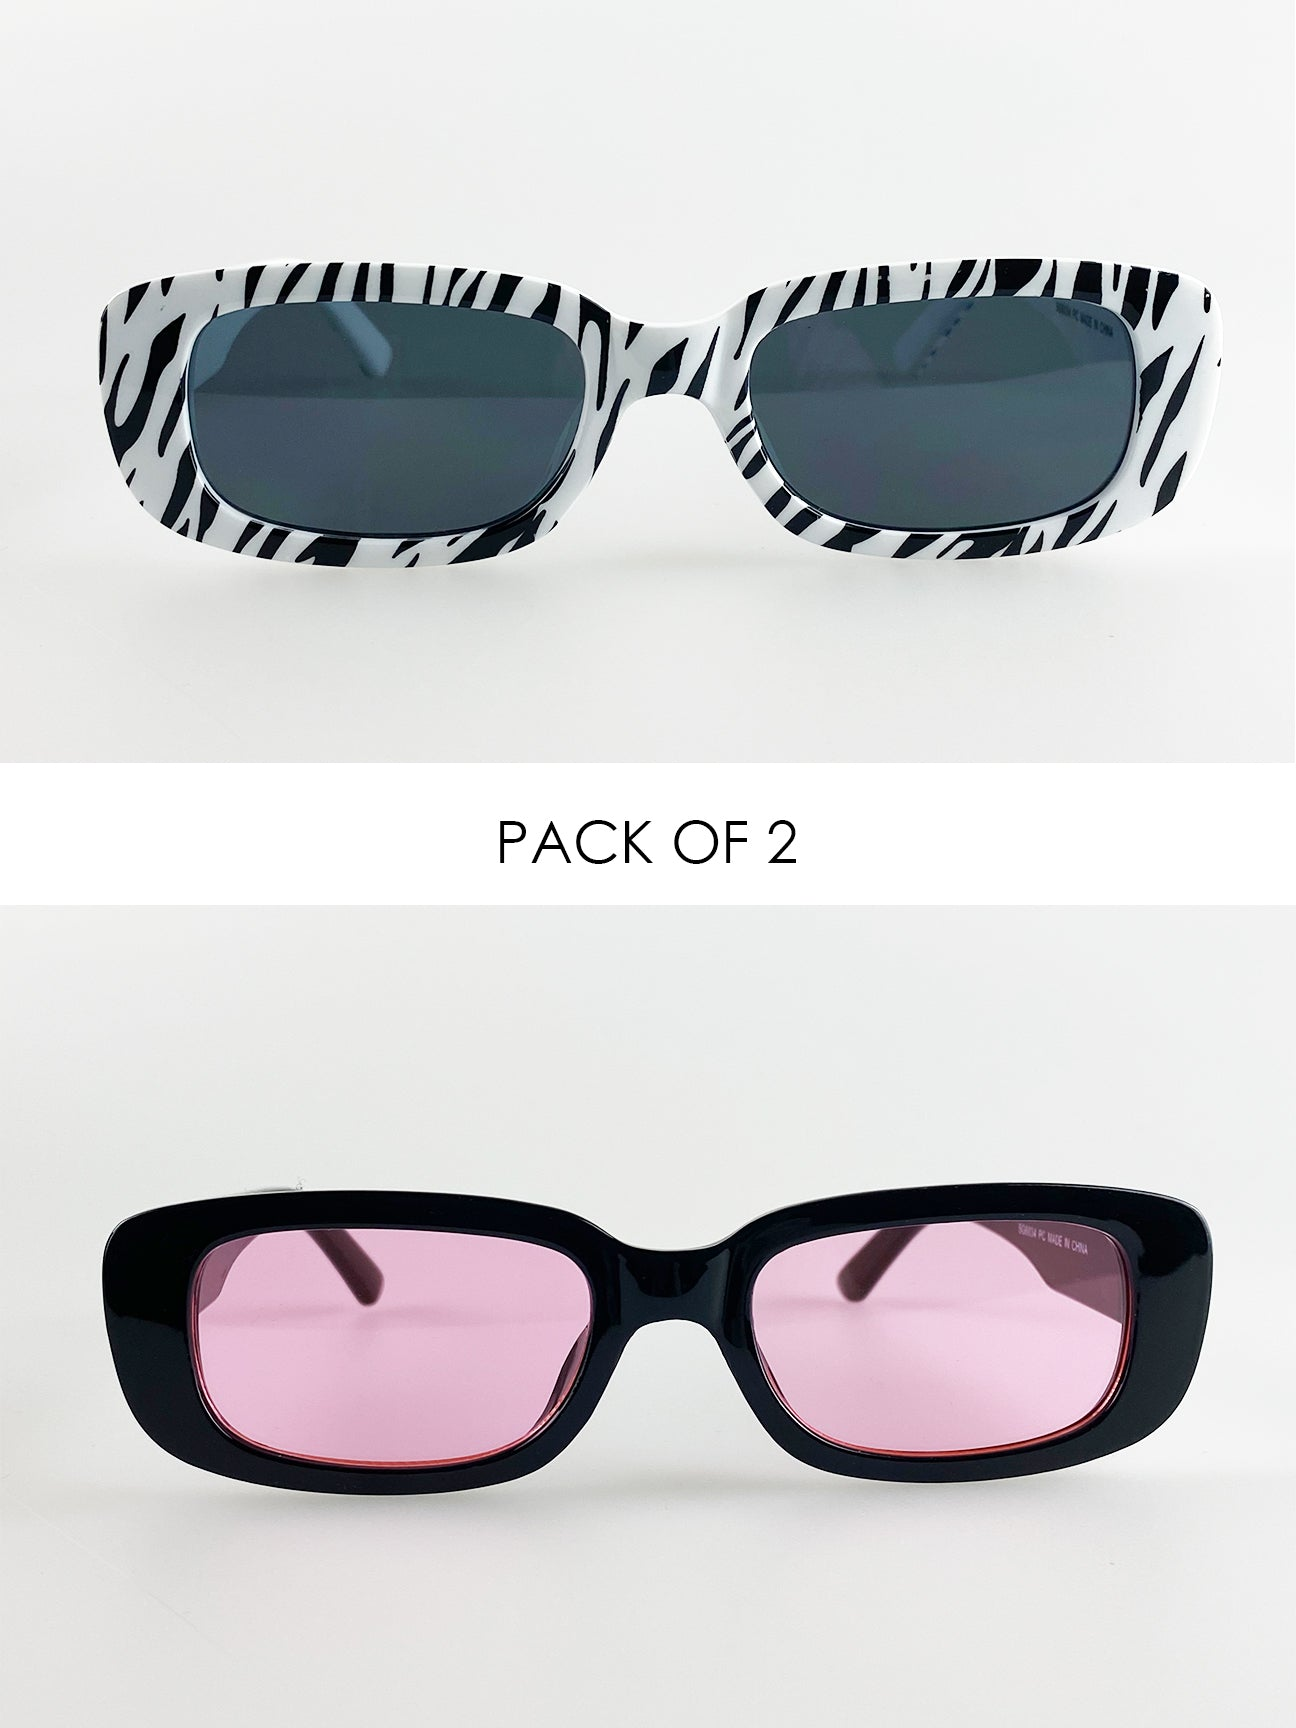 2 Pack Rectangle Sunglasses In Black And Zebra